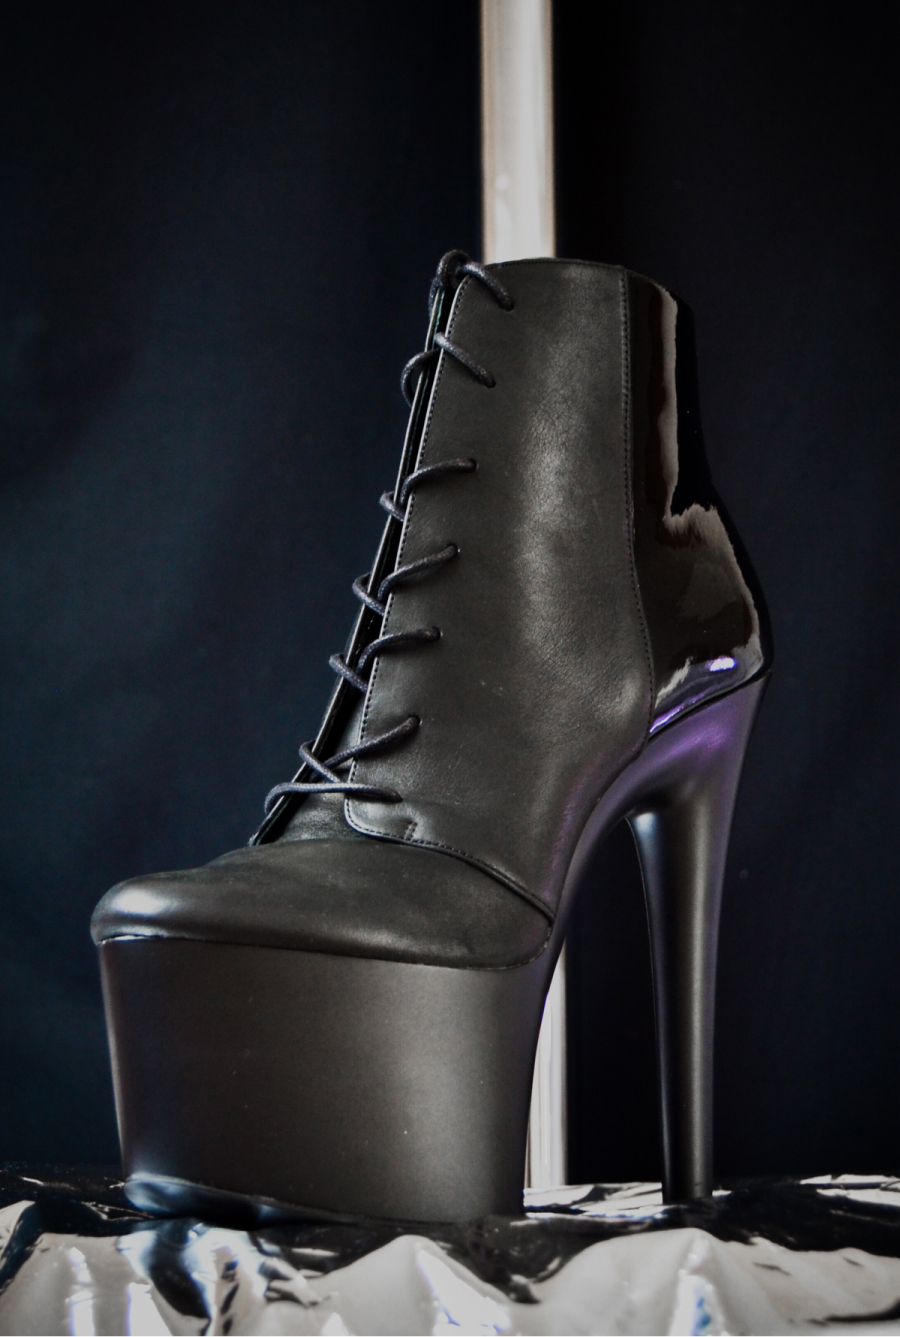 Dup Patent and Matte Black Ankle Boot in front of pole